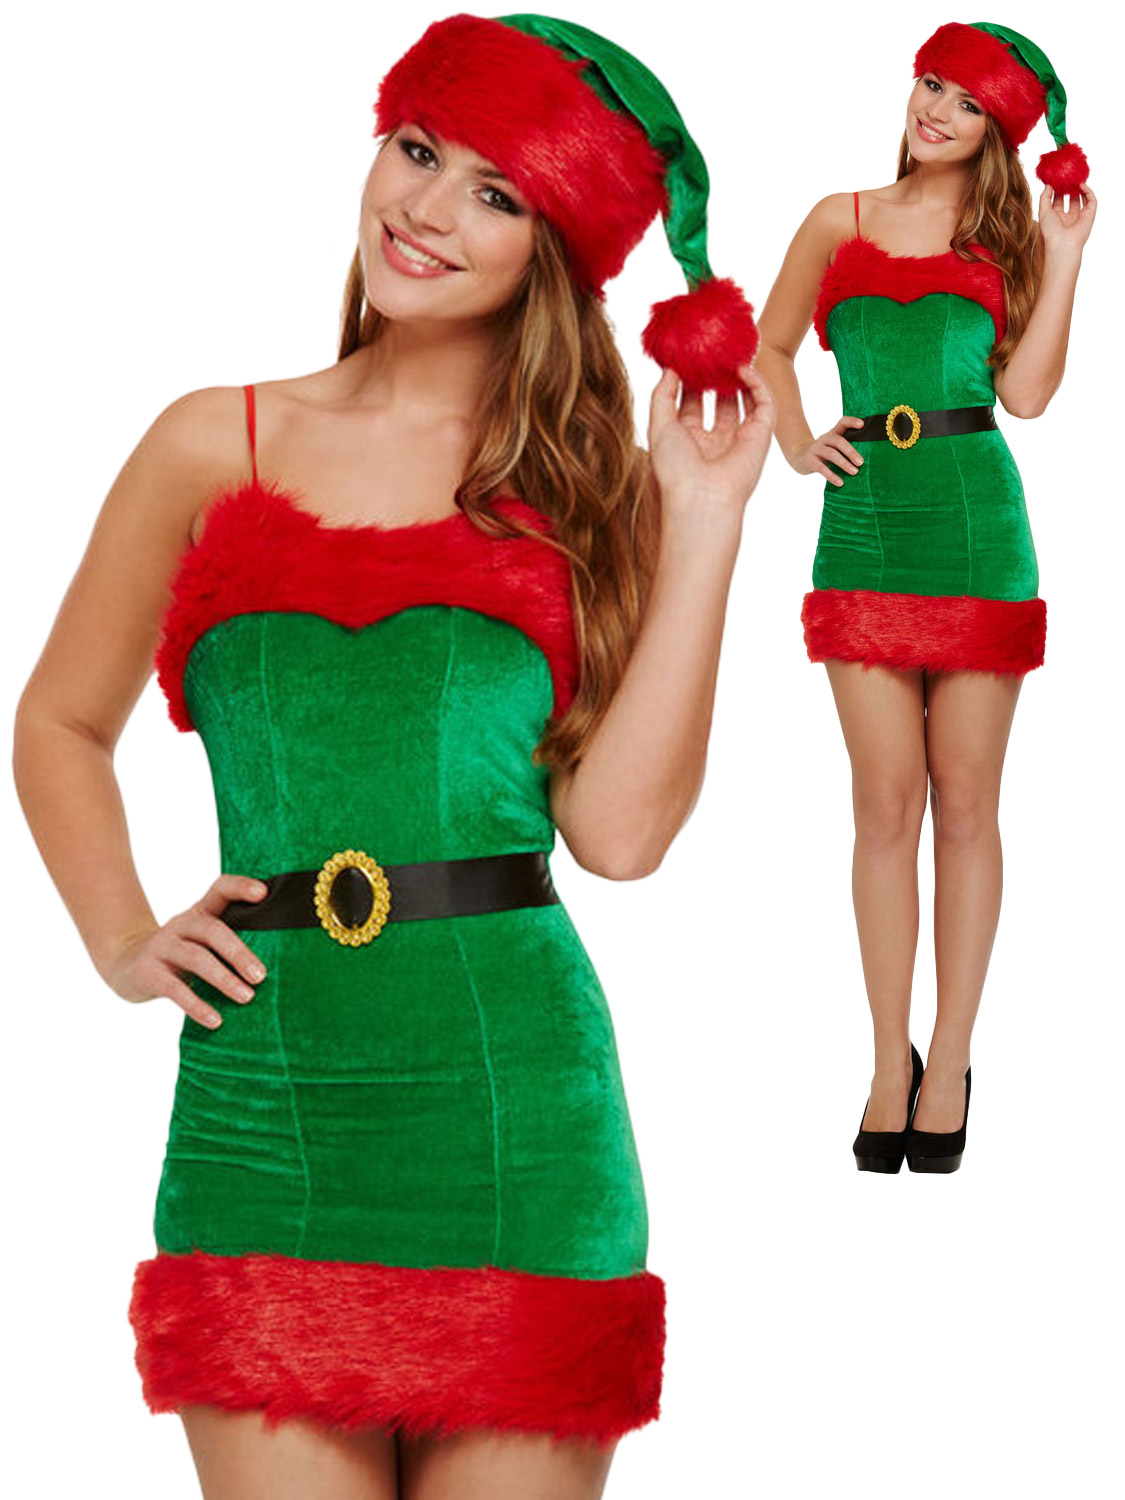 Ladies sexy elf costume adults christmas fancy dress womens santas transform yourself into a santas helper with this ladies sexy elf costume ideal if you are dressing up for an xmas party solutioingenieria Image collections